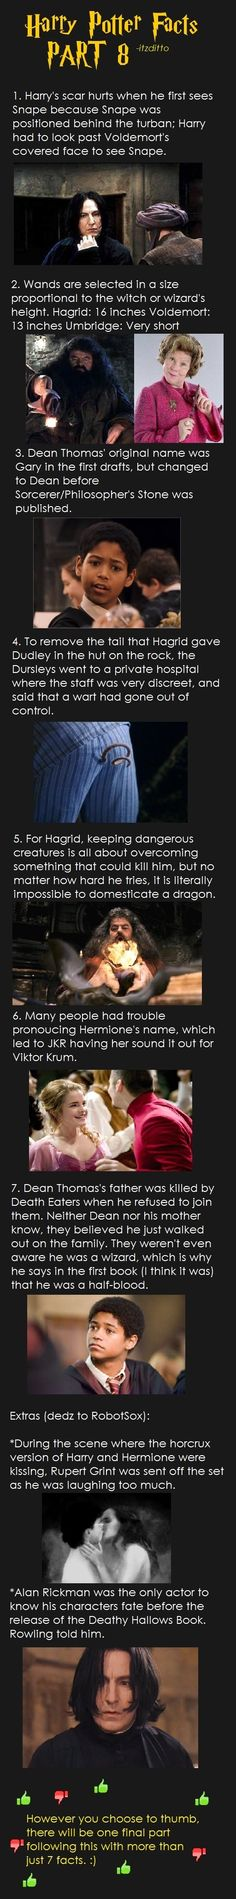 Harry Potter - Fact 8